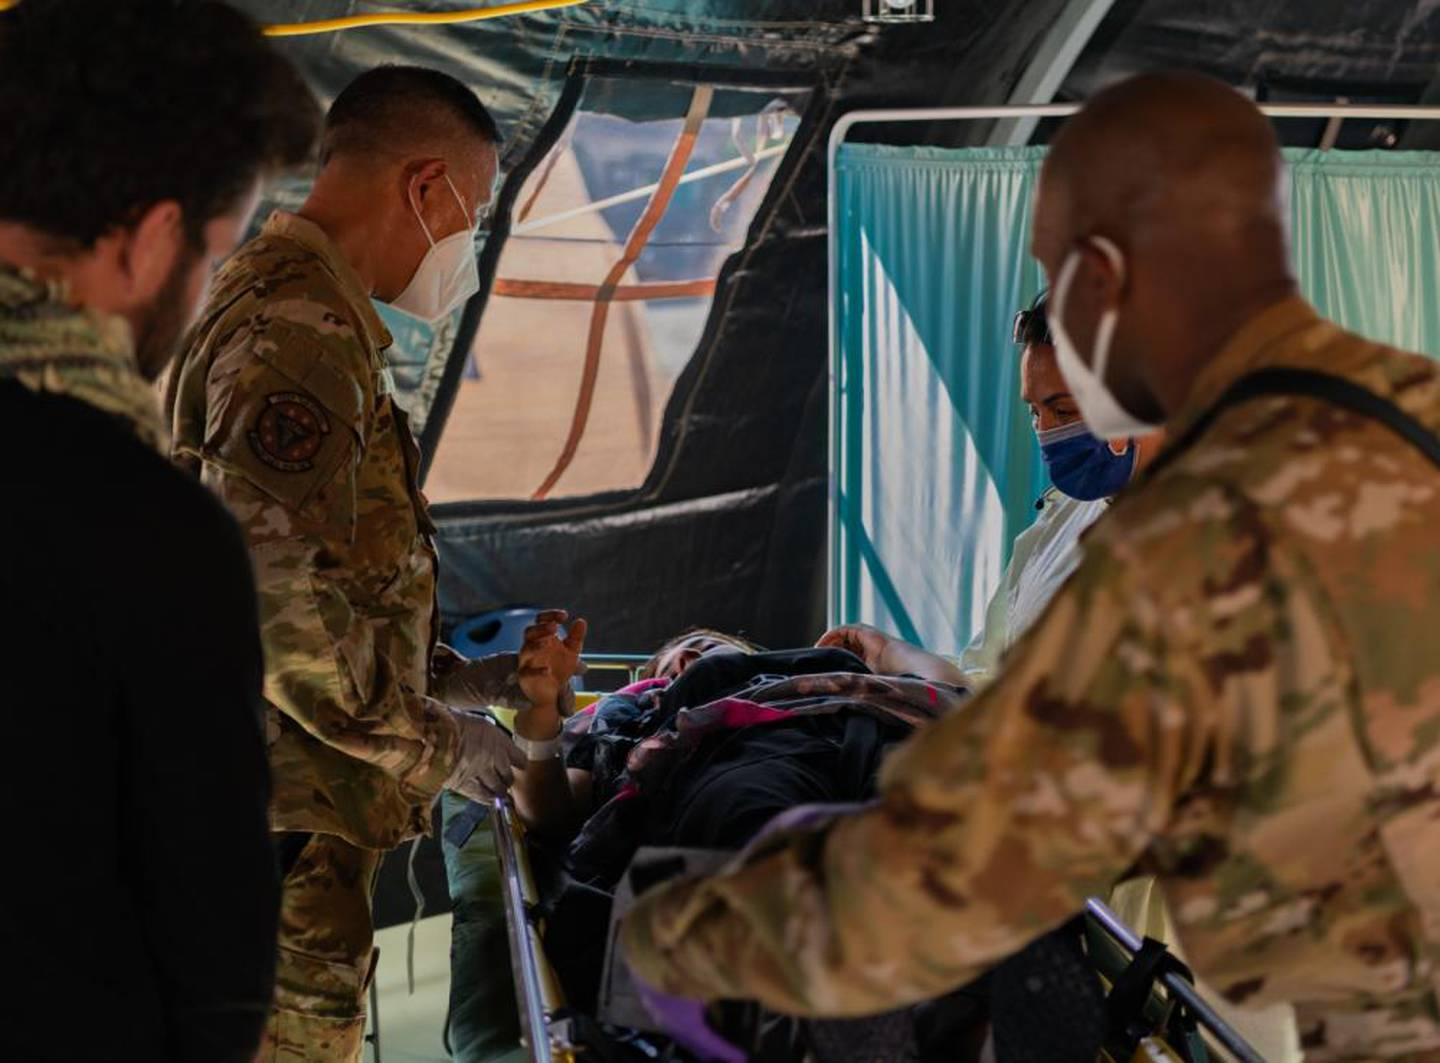 Airmen assigned to the 86th Medical Group provide post-labor care to an Afghan mother who gave birth aboard a U.S. Air Force C-17 Globemaster III, call sign Reach 828, with the aid of U.S. Army Captain Erin Brymer, Landstuhl Regional Medical Center registered nurse, upon landing at Ramstein Air Base, Germany, Aug. 21. During an evacuation flight from an Intermediate Staging Base in the Middle East, the mother went into labor and began experiencing complications due to low blood pressure. The aircraft commander made the decision to descend in altitude to increase air pressure in the aircraft, which helped stabilize and save the mother's life. Upon landing, Capt. Brymer and 86th Airlift Wing medics came aboard and delivered the child in the cargo bay of the aircraft. The baby girl and mother were transported to a nearby medical facility and are in good condition. (Airman Edgar Grimaldo/Air Force)